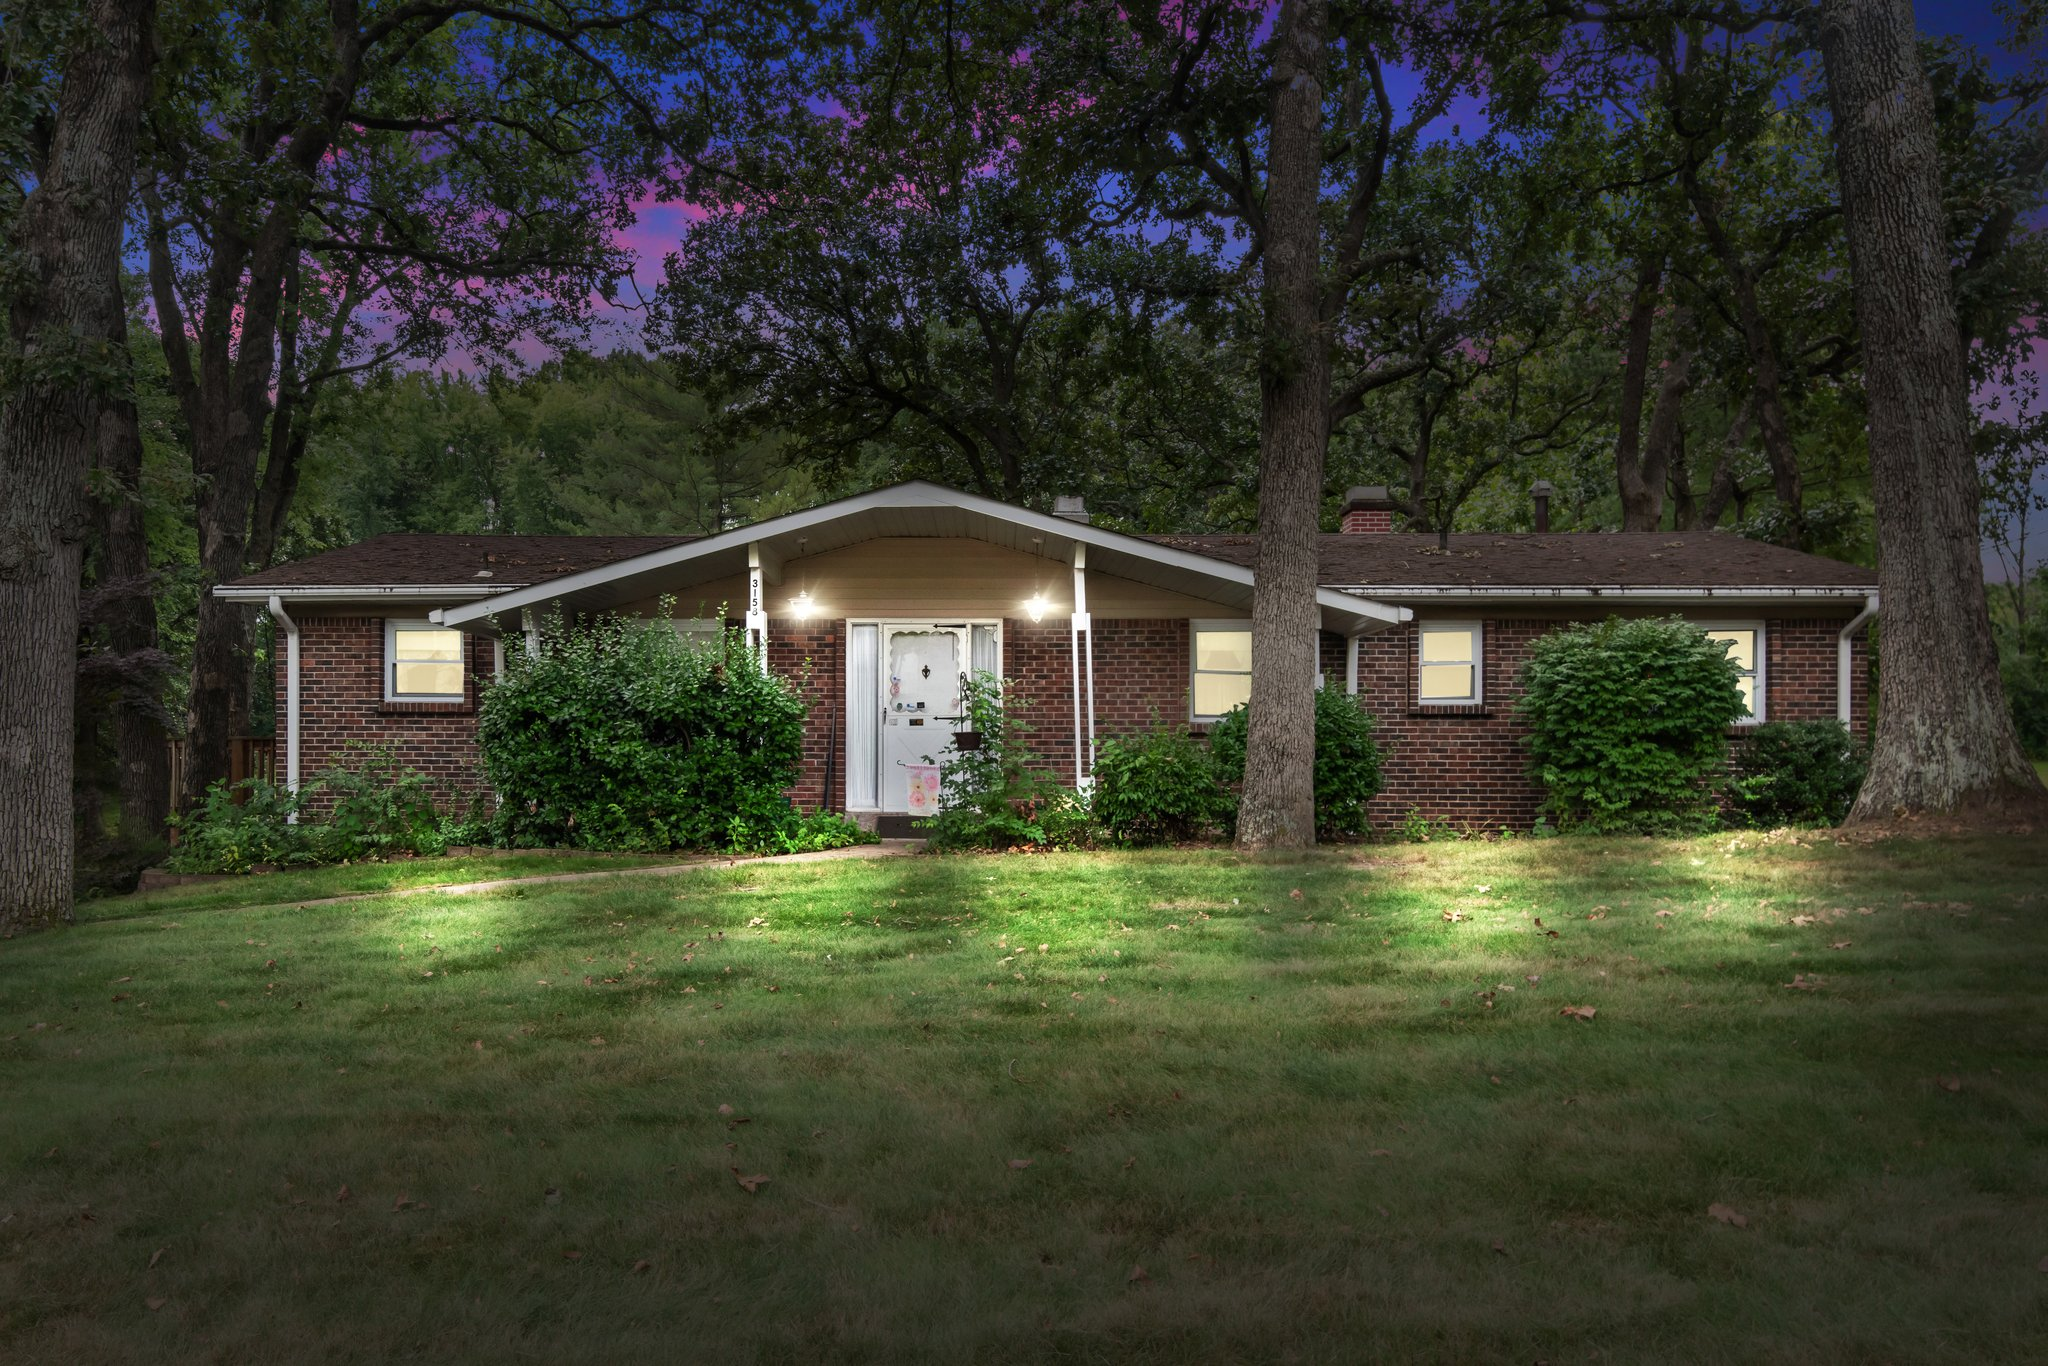 3158 McClay Rd, St Peters, MO 63376, USA